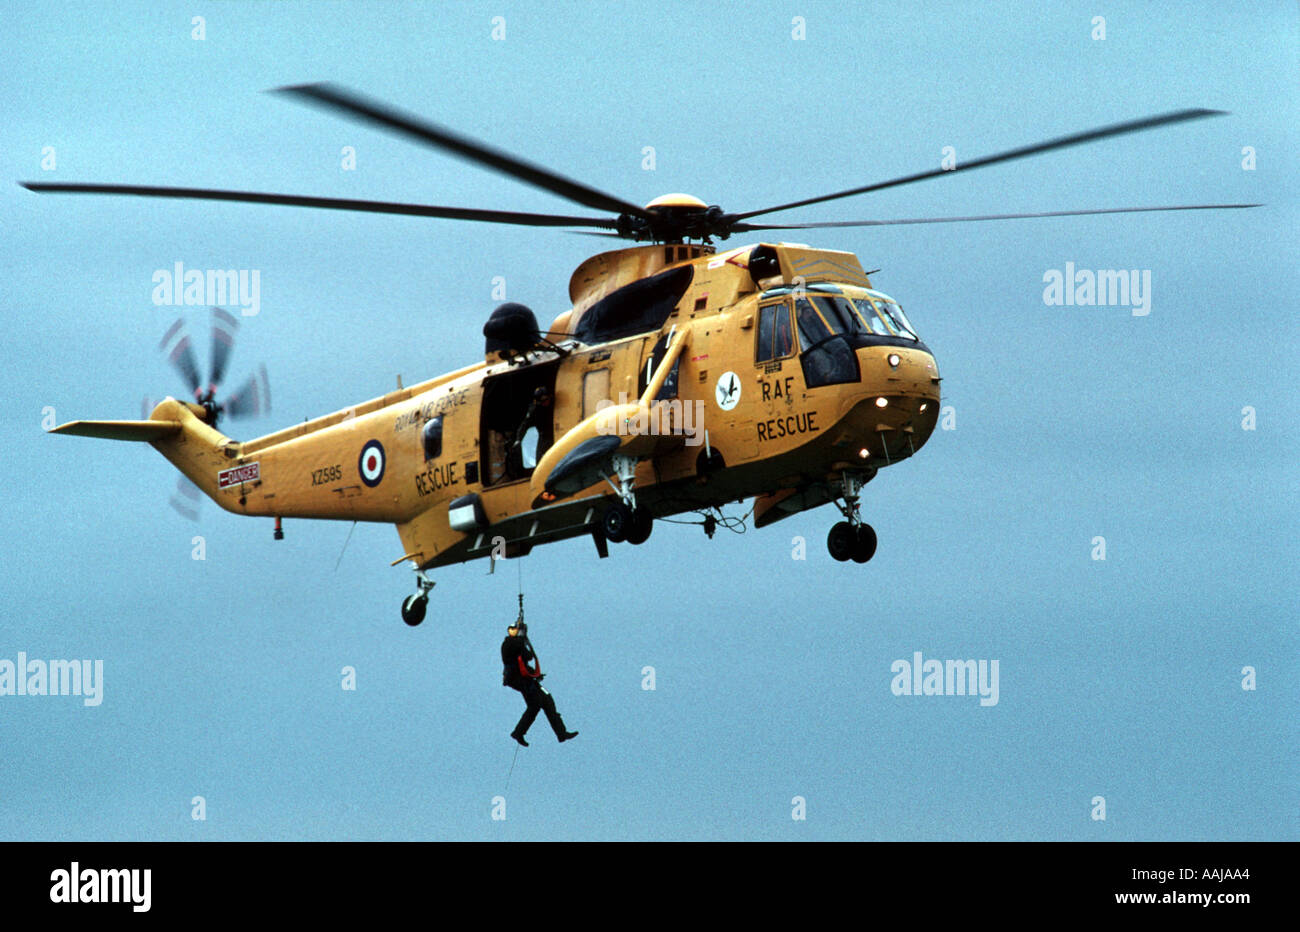 Sikorsky rescue helicopter - Stock Image